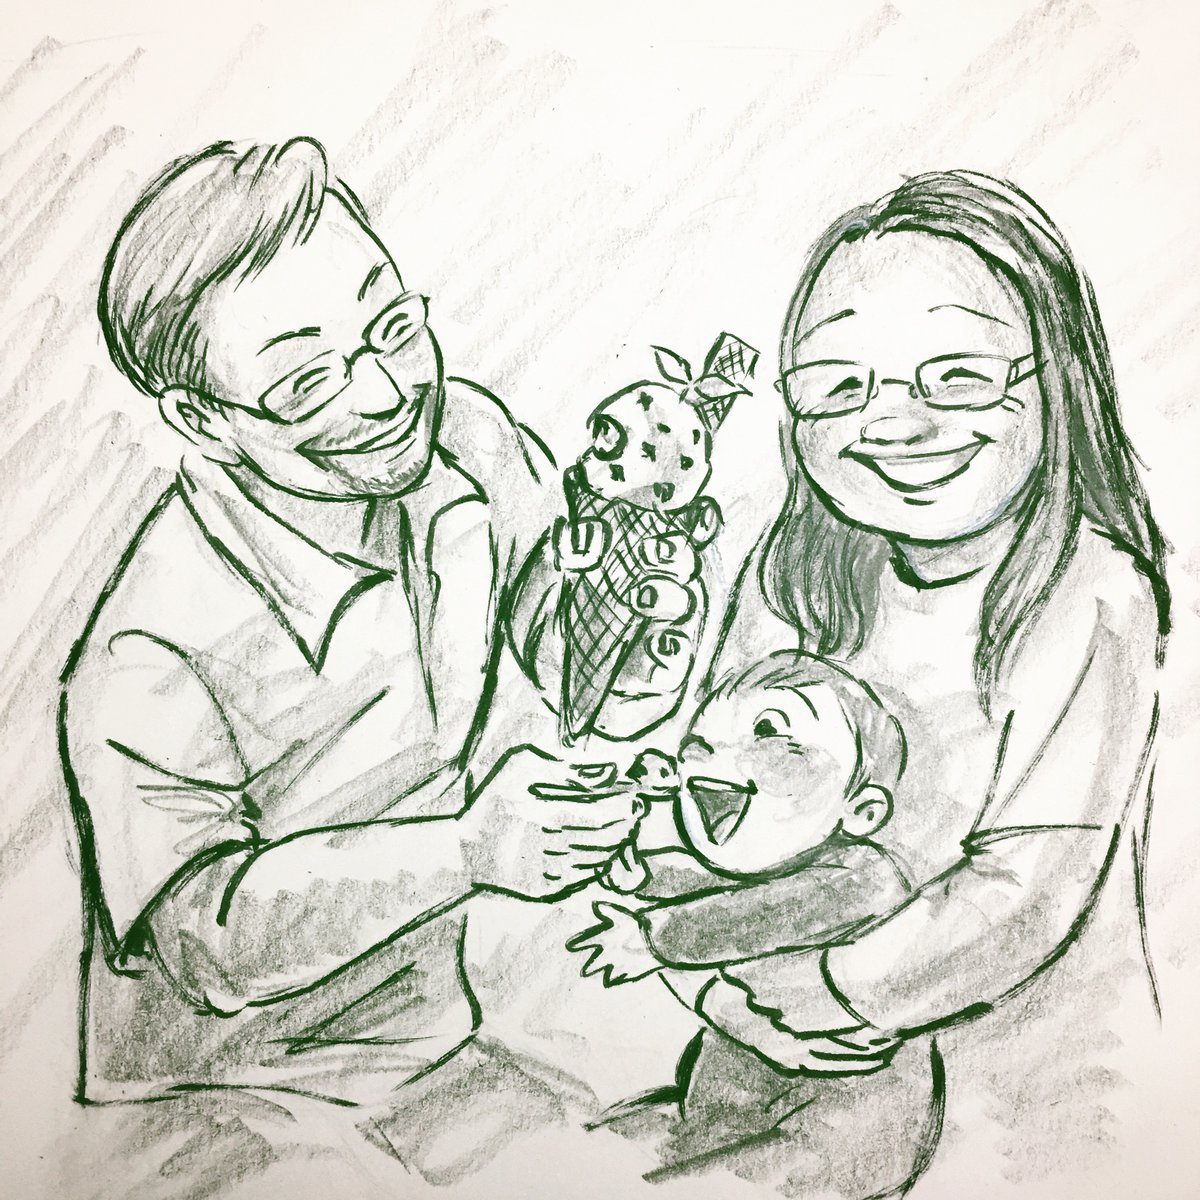 Seems like I forgot to post one from day before yesterday...  Here's a drawing of a family eating ice-cream 😋 Commission from a mom.   #commission #Day39 #family  #portrait #drawing #doodle #everydaydrawingchallenge #Day80 #筆ペン #絵 #筆ペンイラスト #筆ペン画 #fudepen